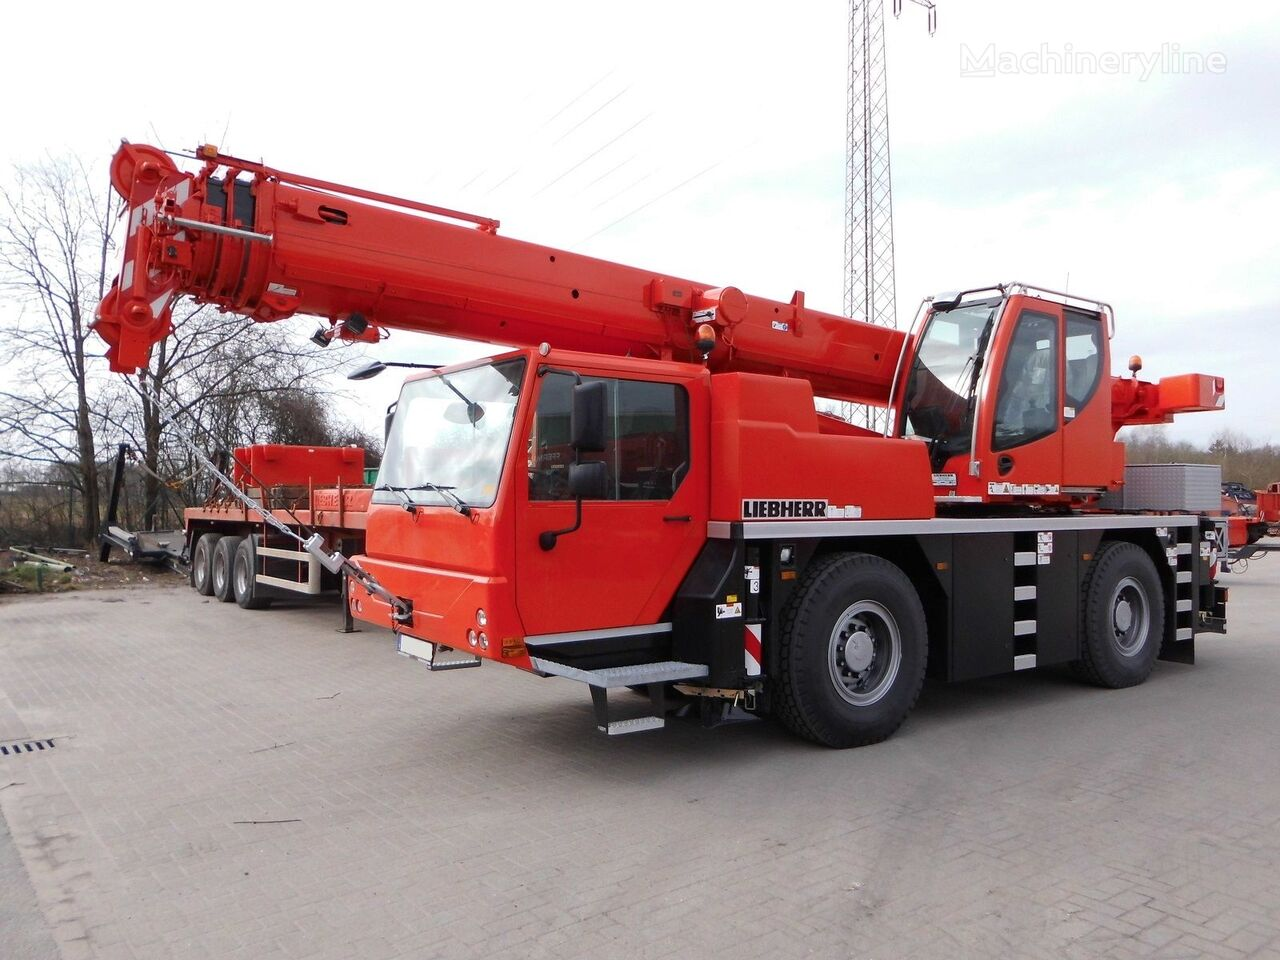 LTM 1030-2.1 on chassis LIEBHERR LTM 1030-2.1 mobile crane